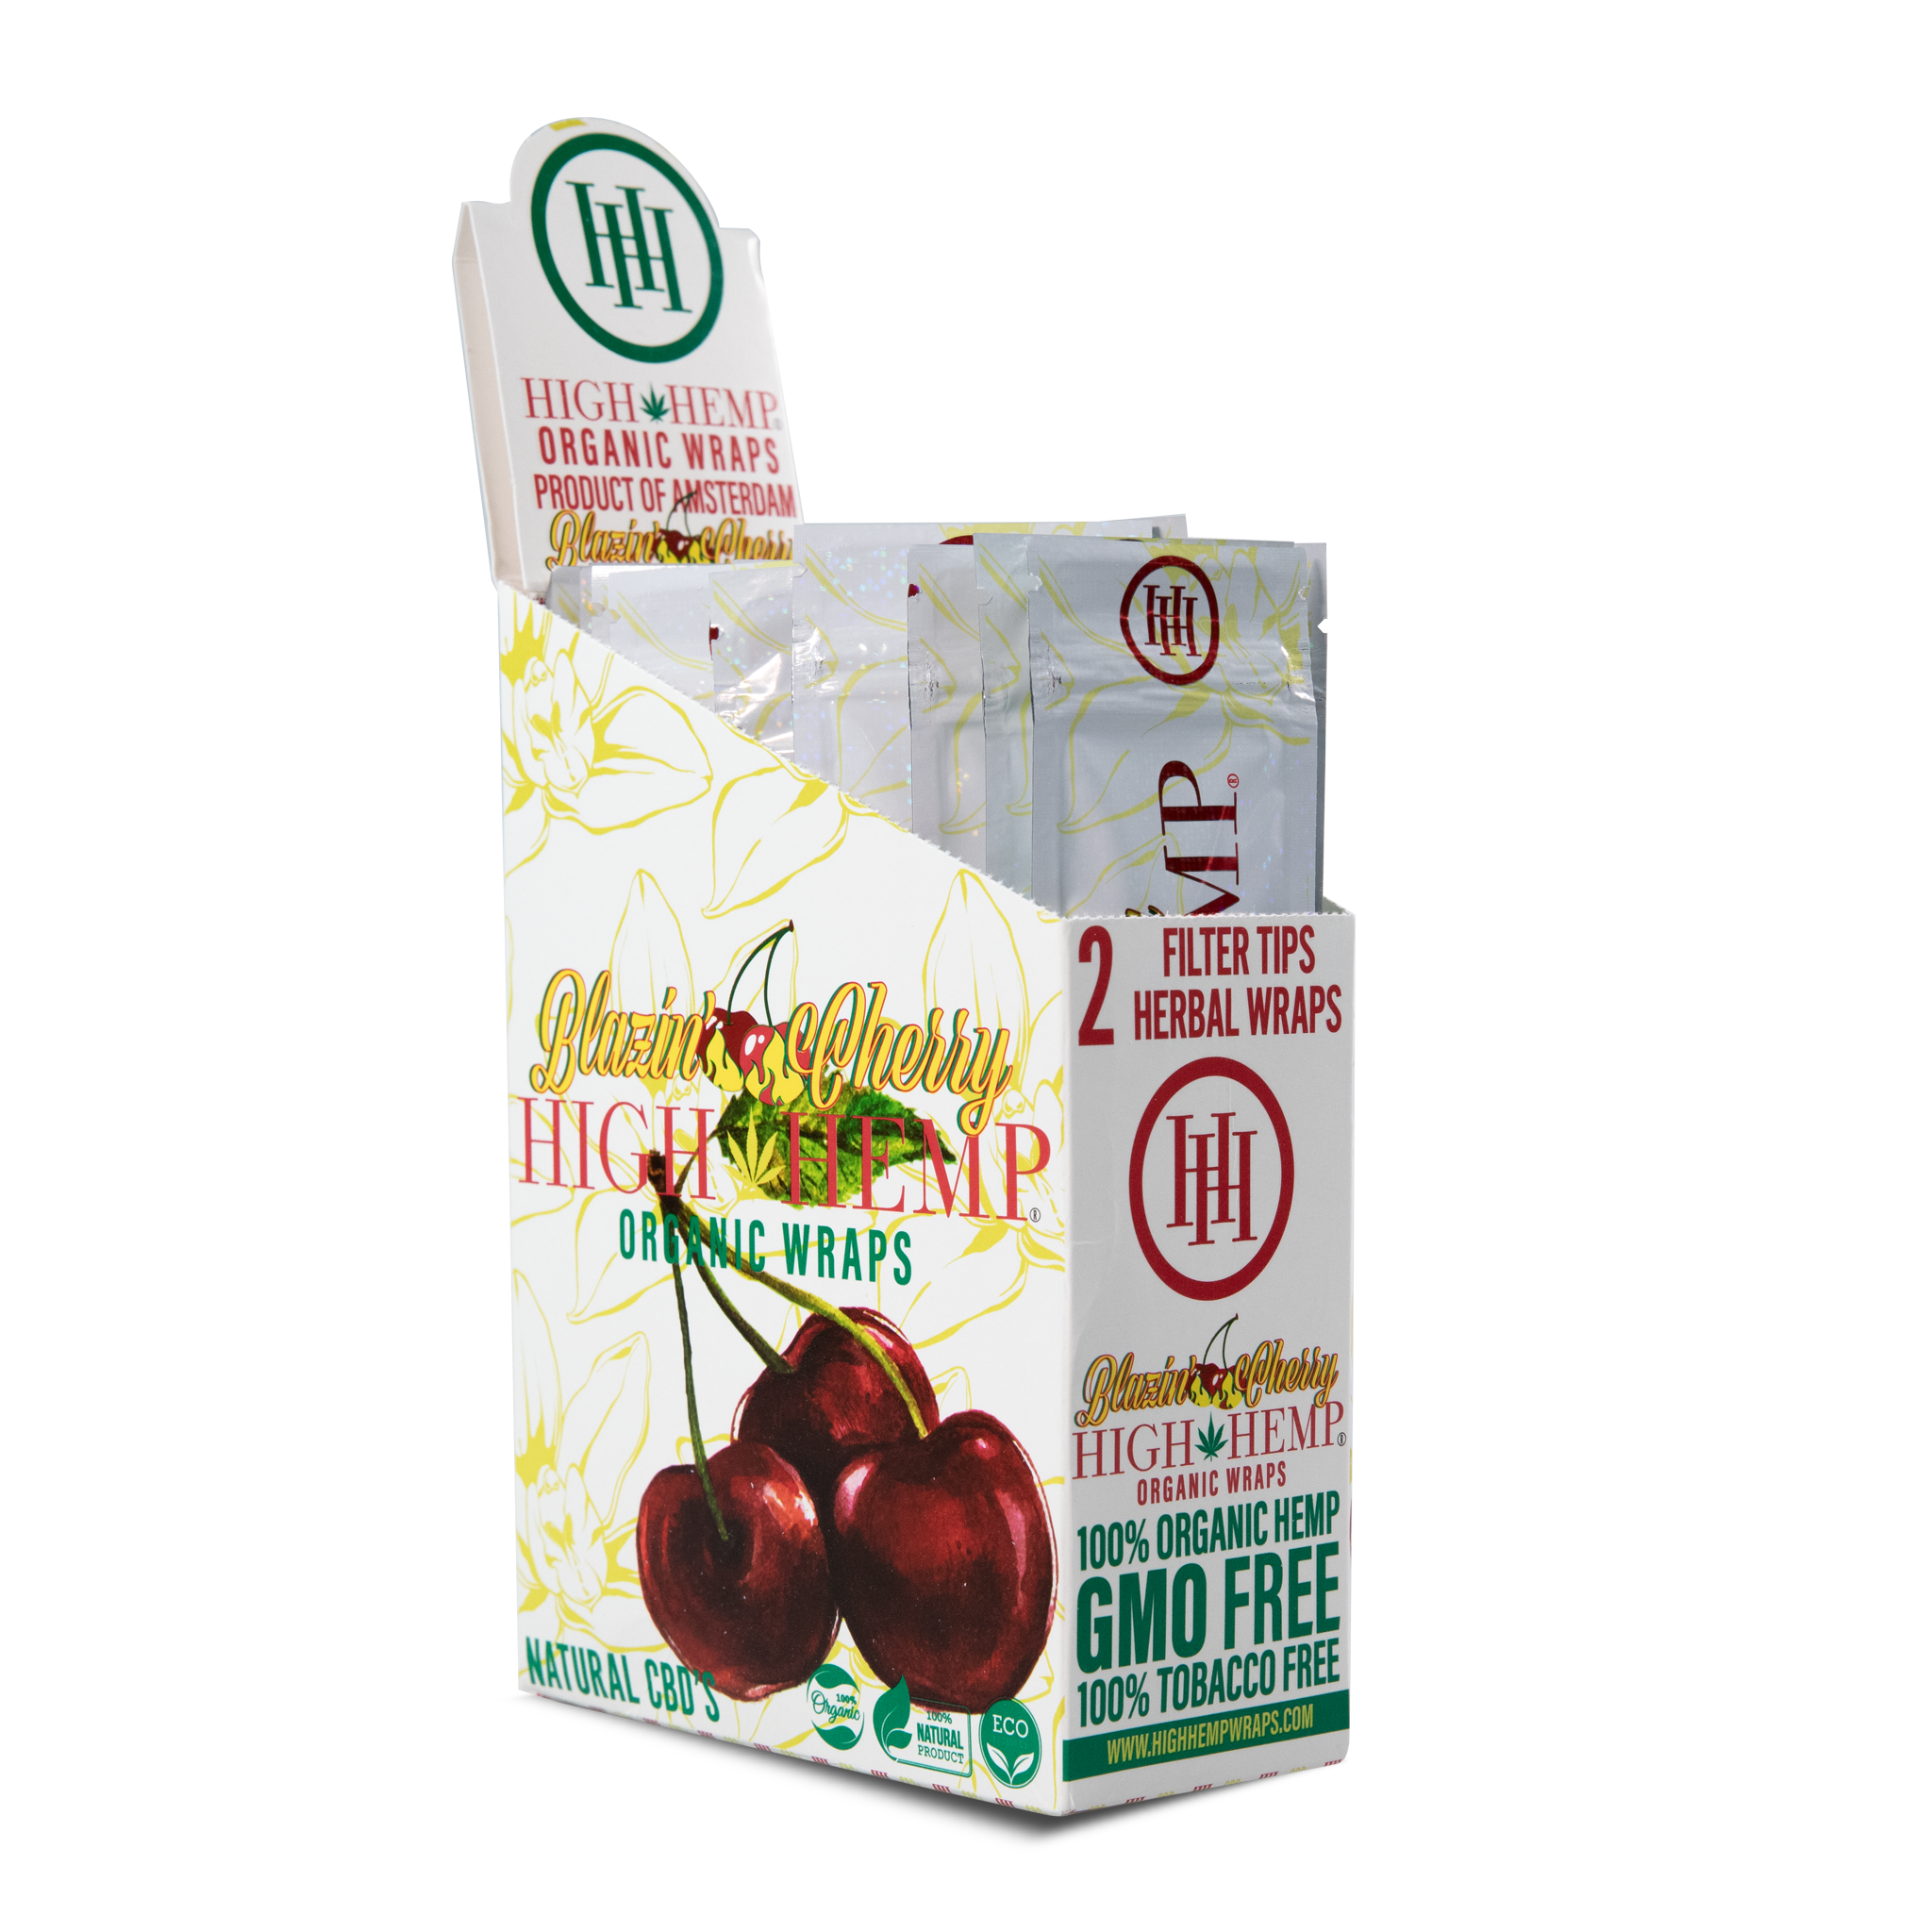 High Hemp Organic Wraps Blazin' Cherry - High Hemp Herbal Wraps